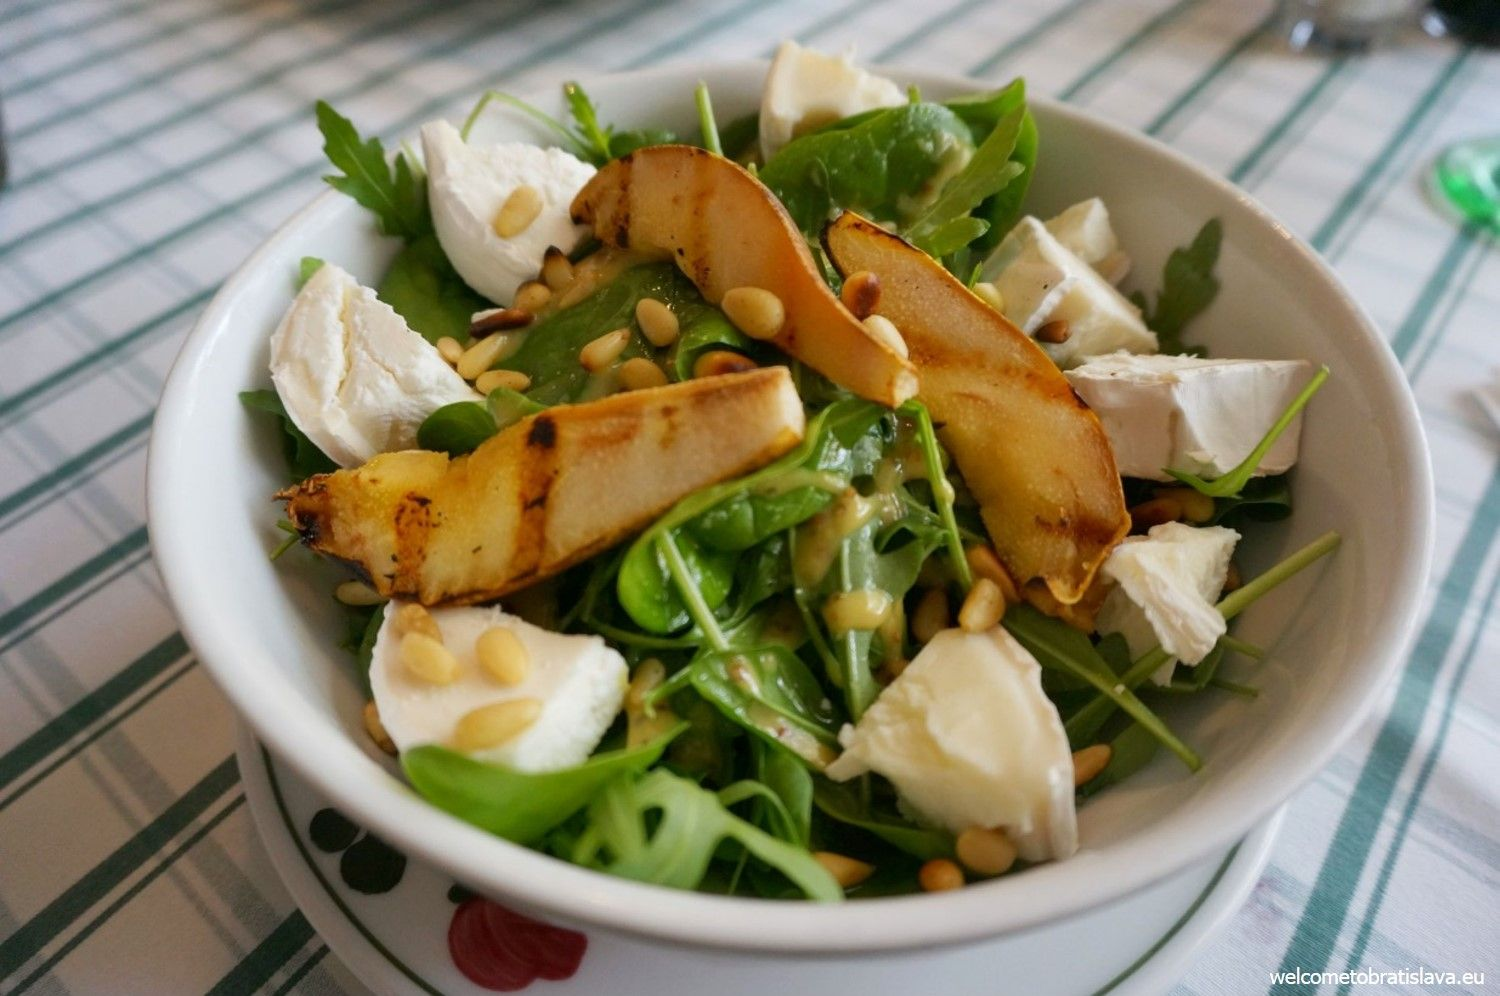 Salad with goat cheese, grilled pears, pine nuts and honey & mustard sauce